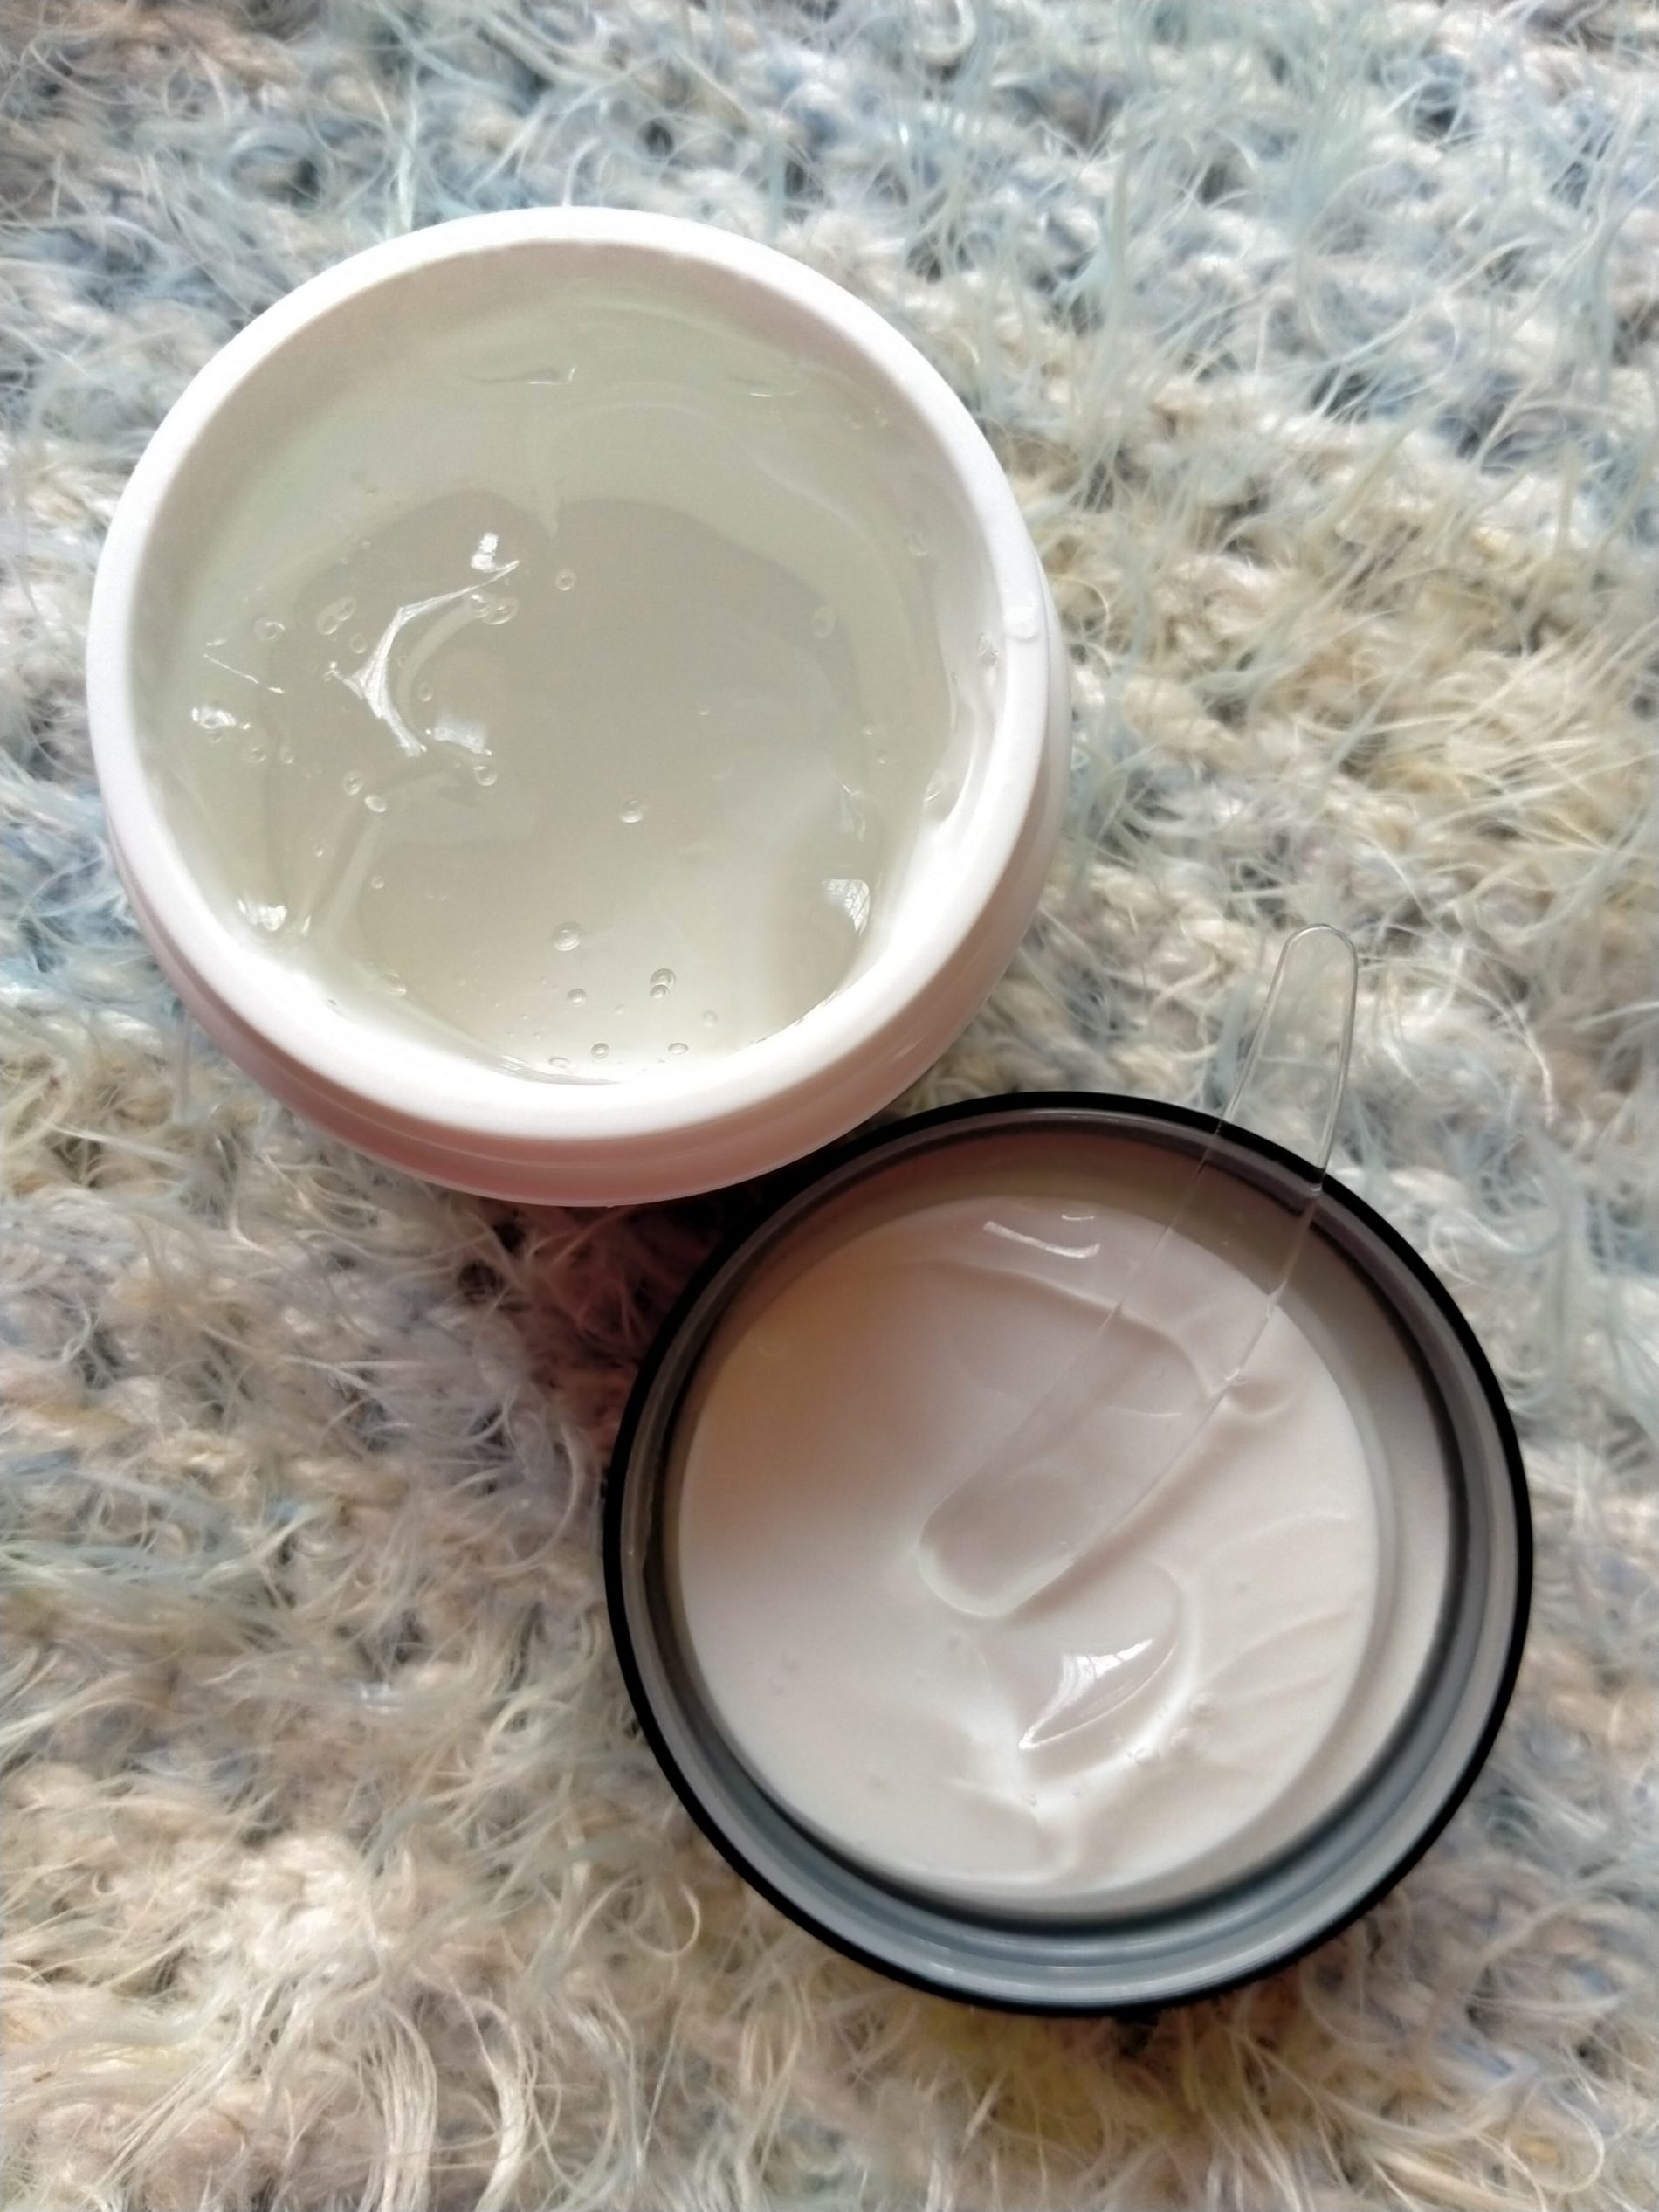 How To Use A Water-Based Moisturizer For Hydrated Skin